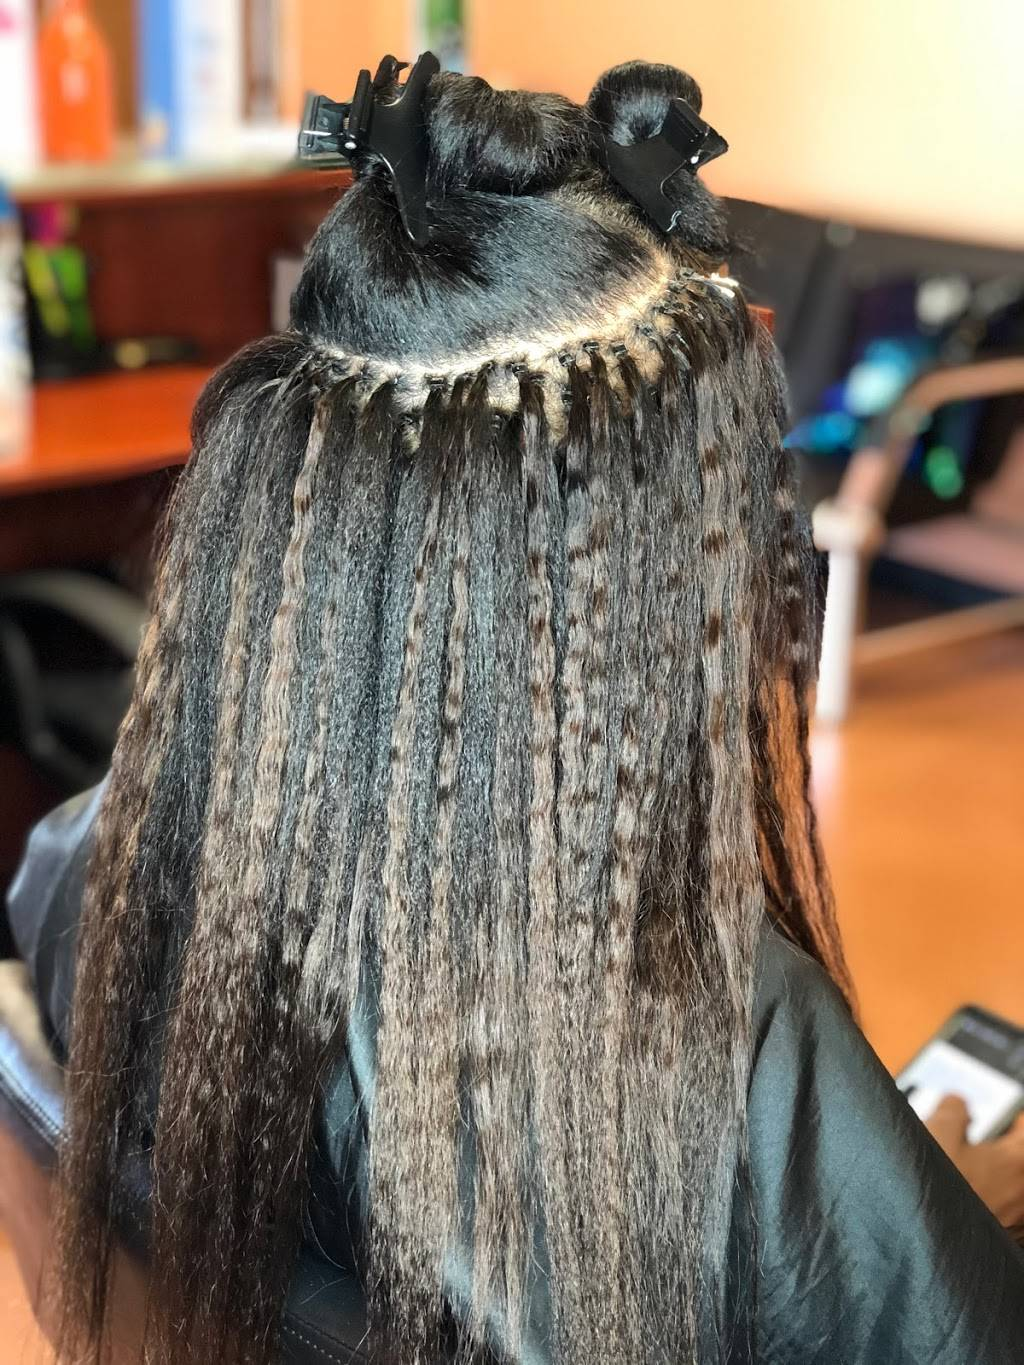 the Hair Scholars Salon - hair care  | Photo 4 of 8 | Address: 6017 Mableton Pkwy SW, Mableton, GA 30126, USA | Phone: (678) 437-5475